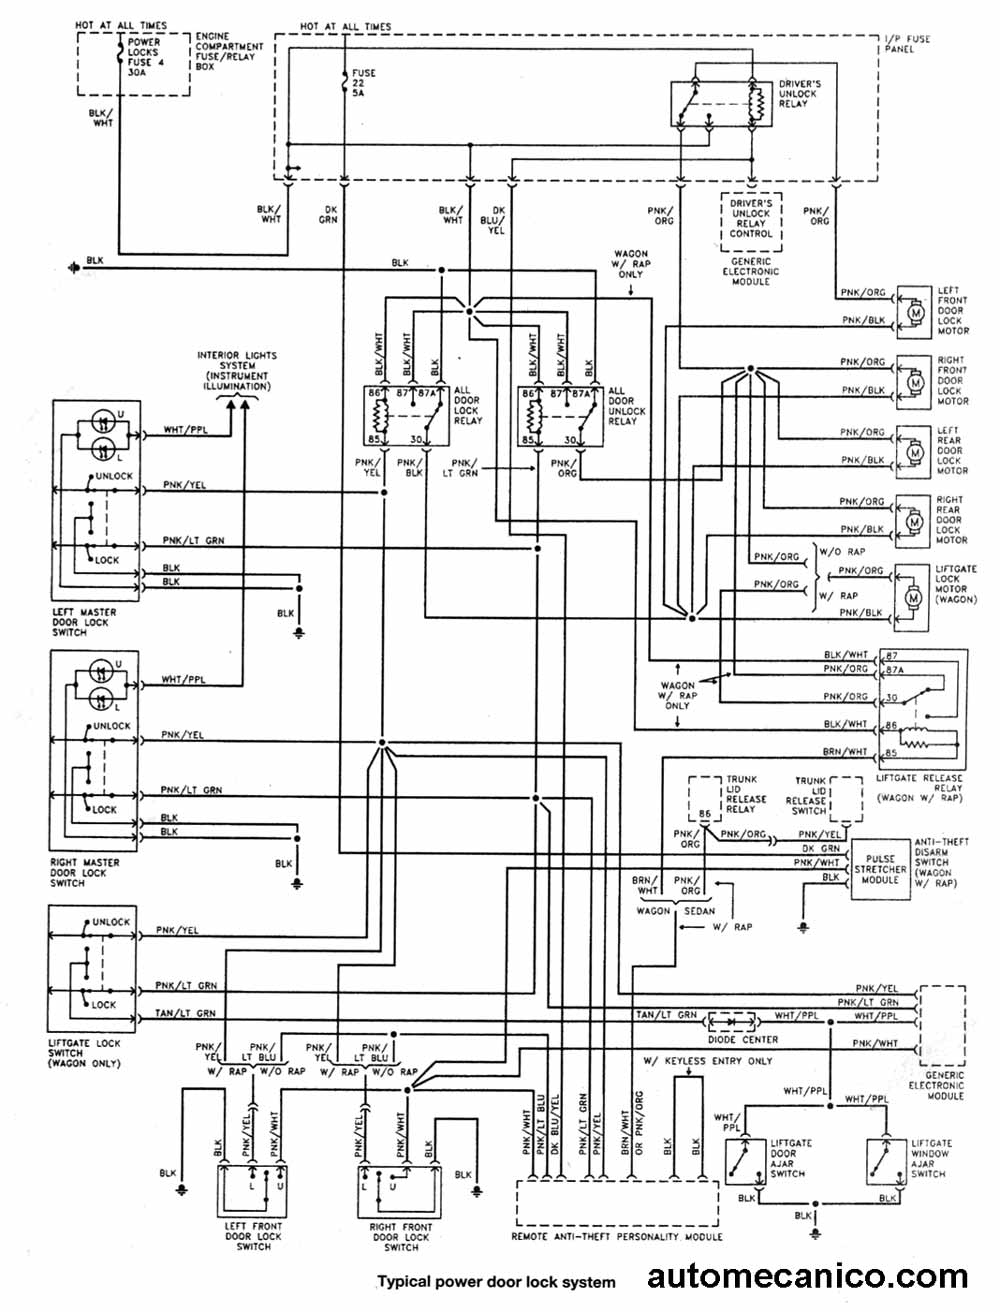 Dtaur on 2002 nissan sentra fuse box diagram